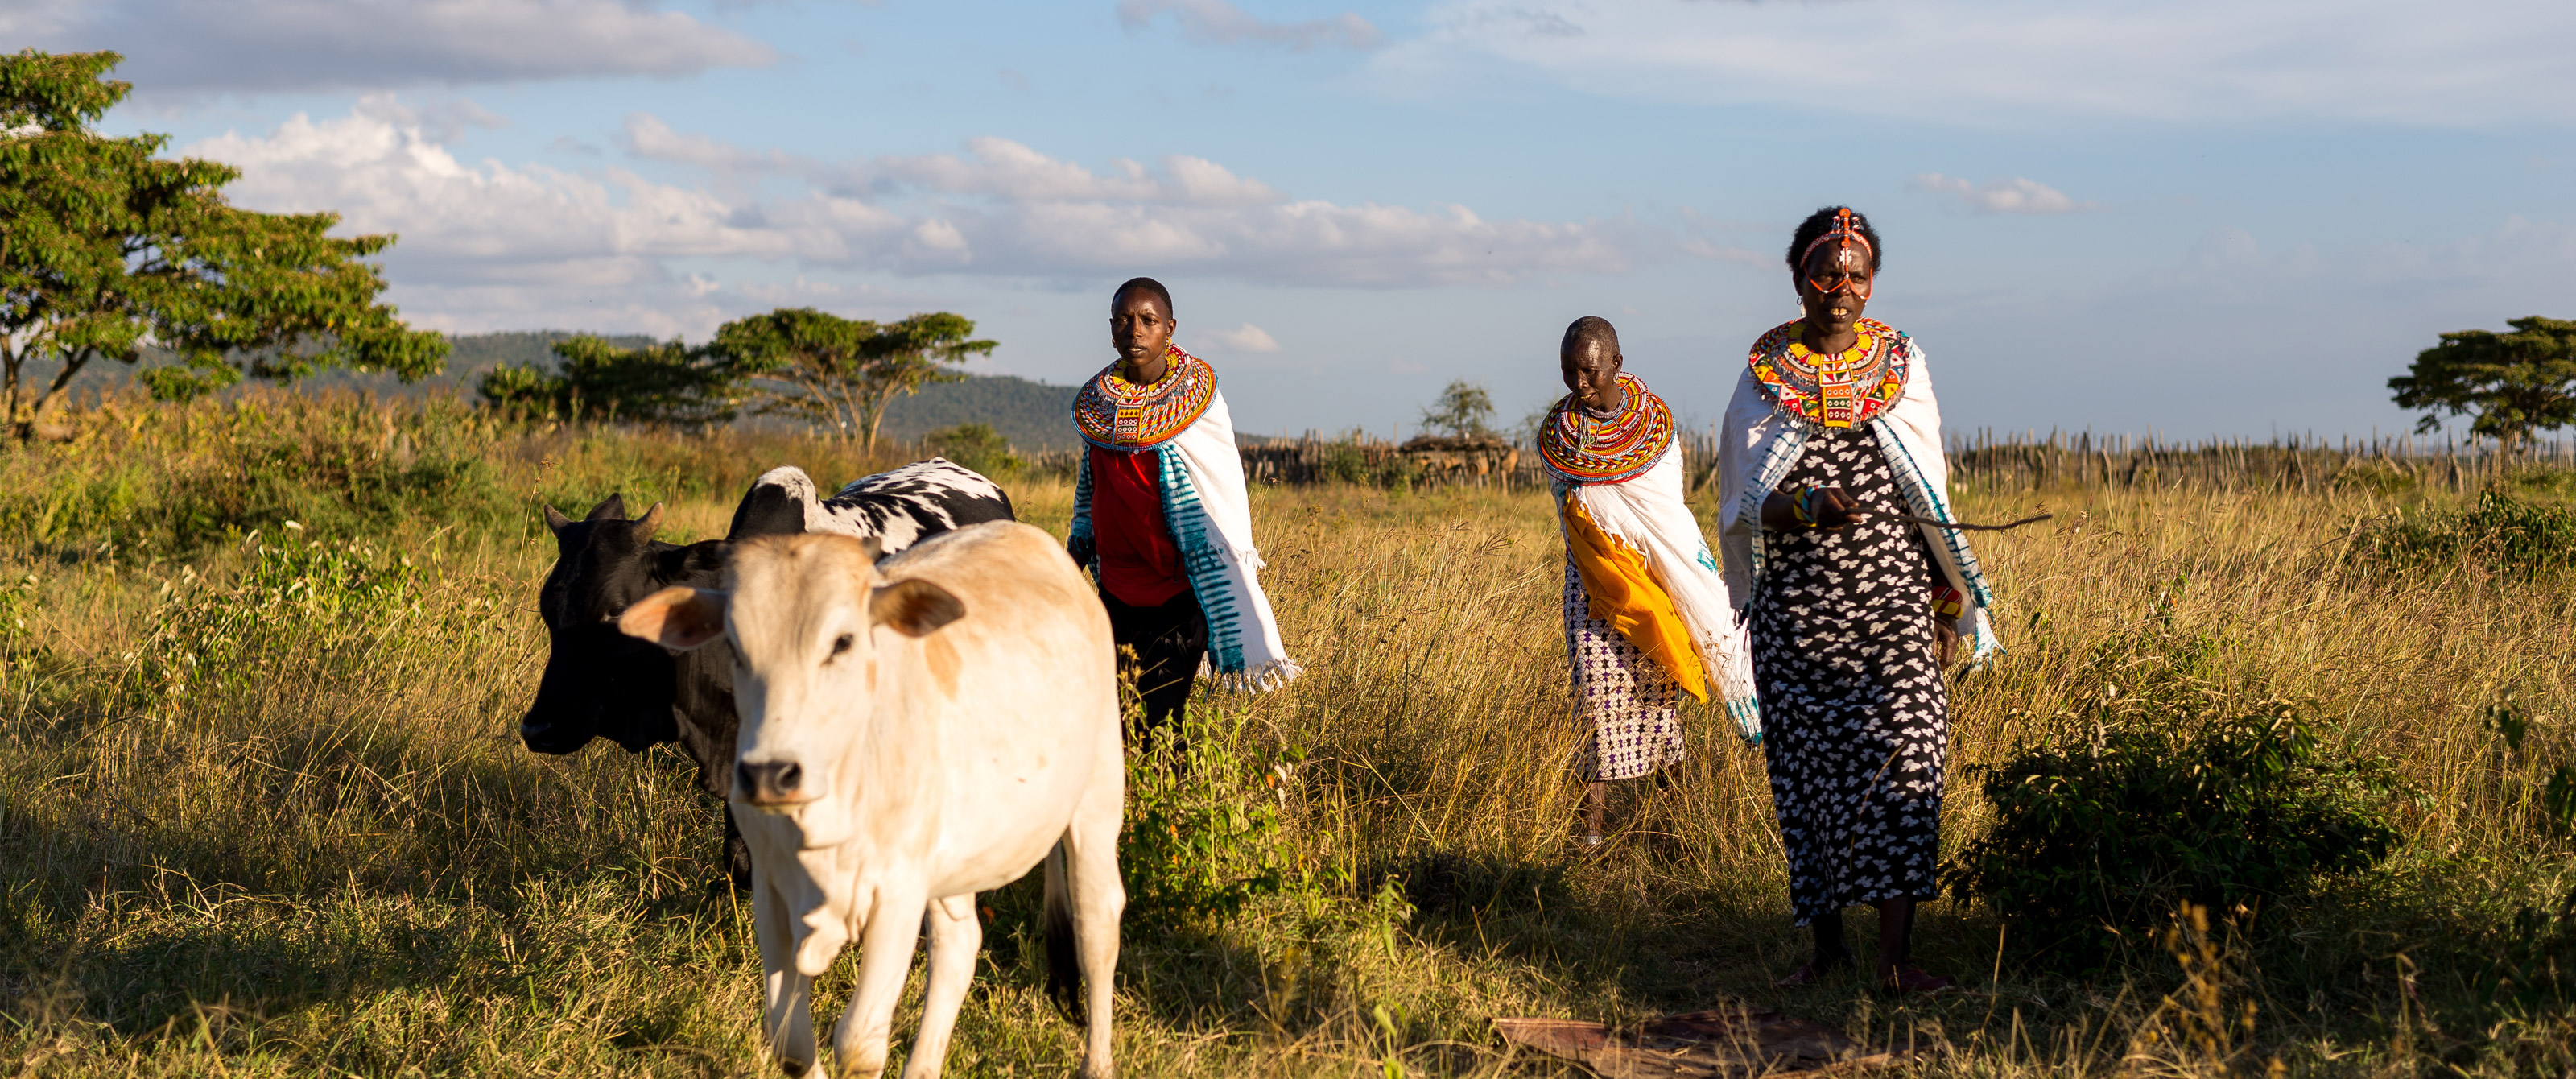 Cows and women in a field